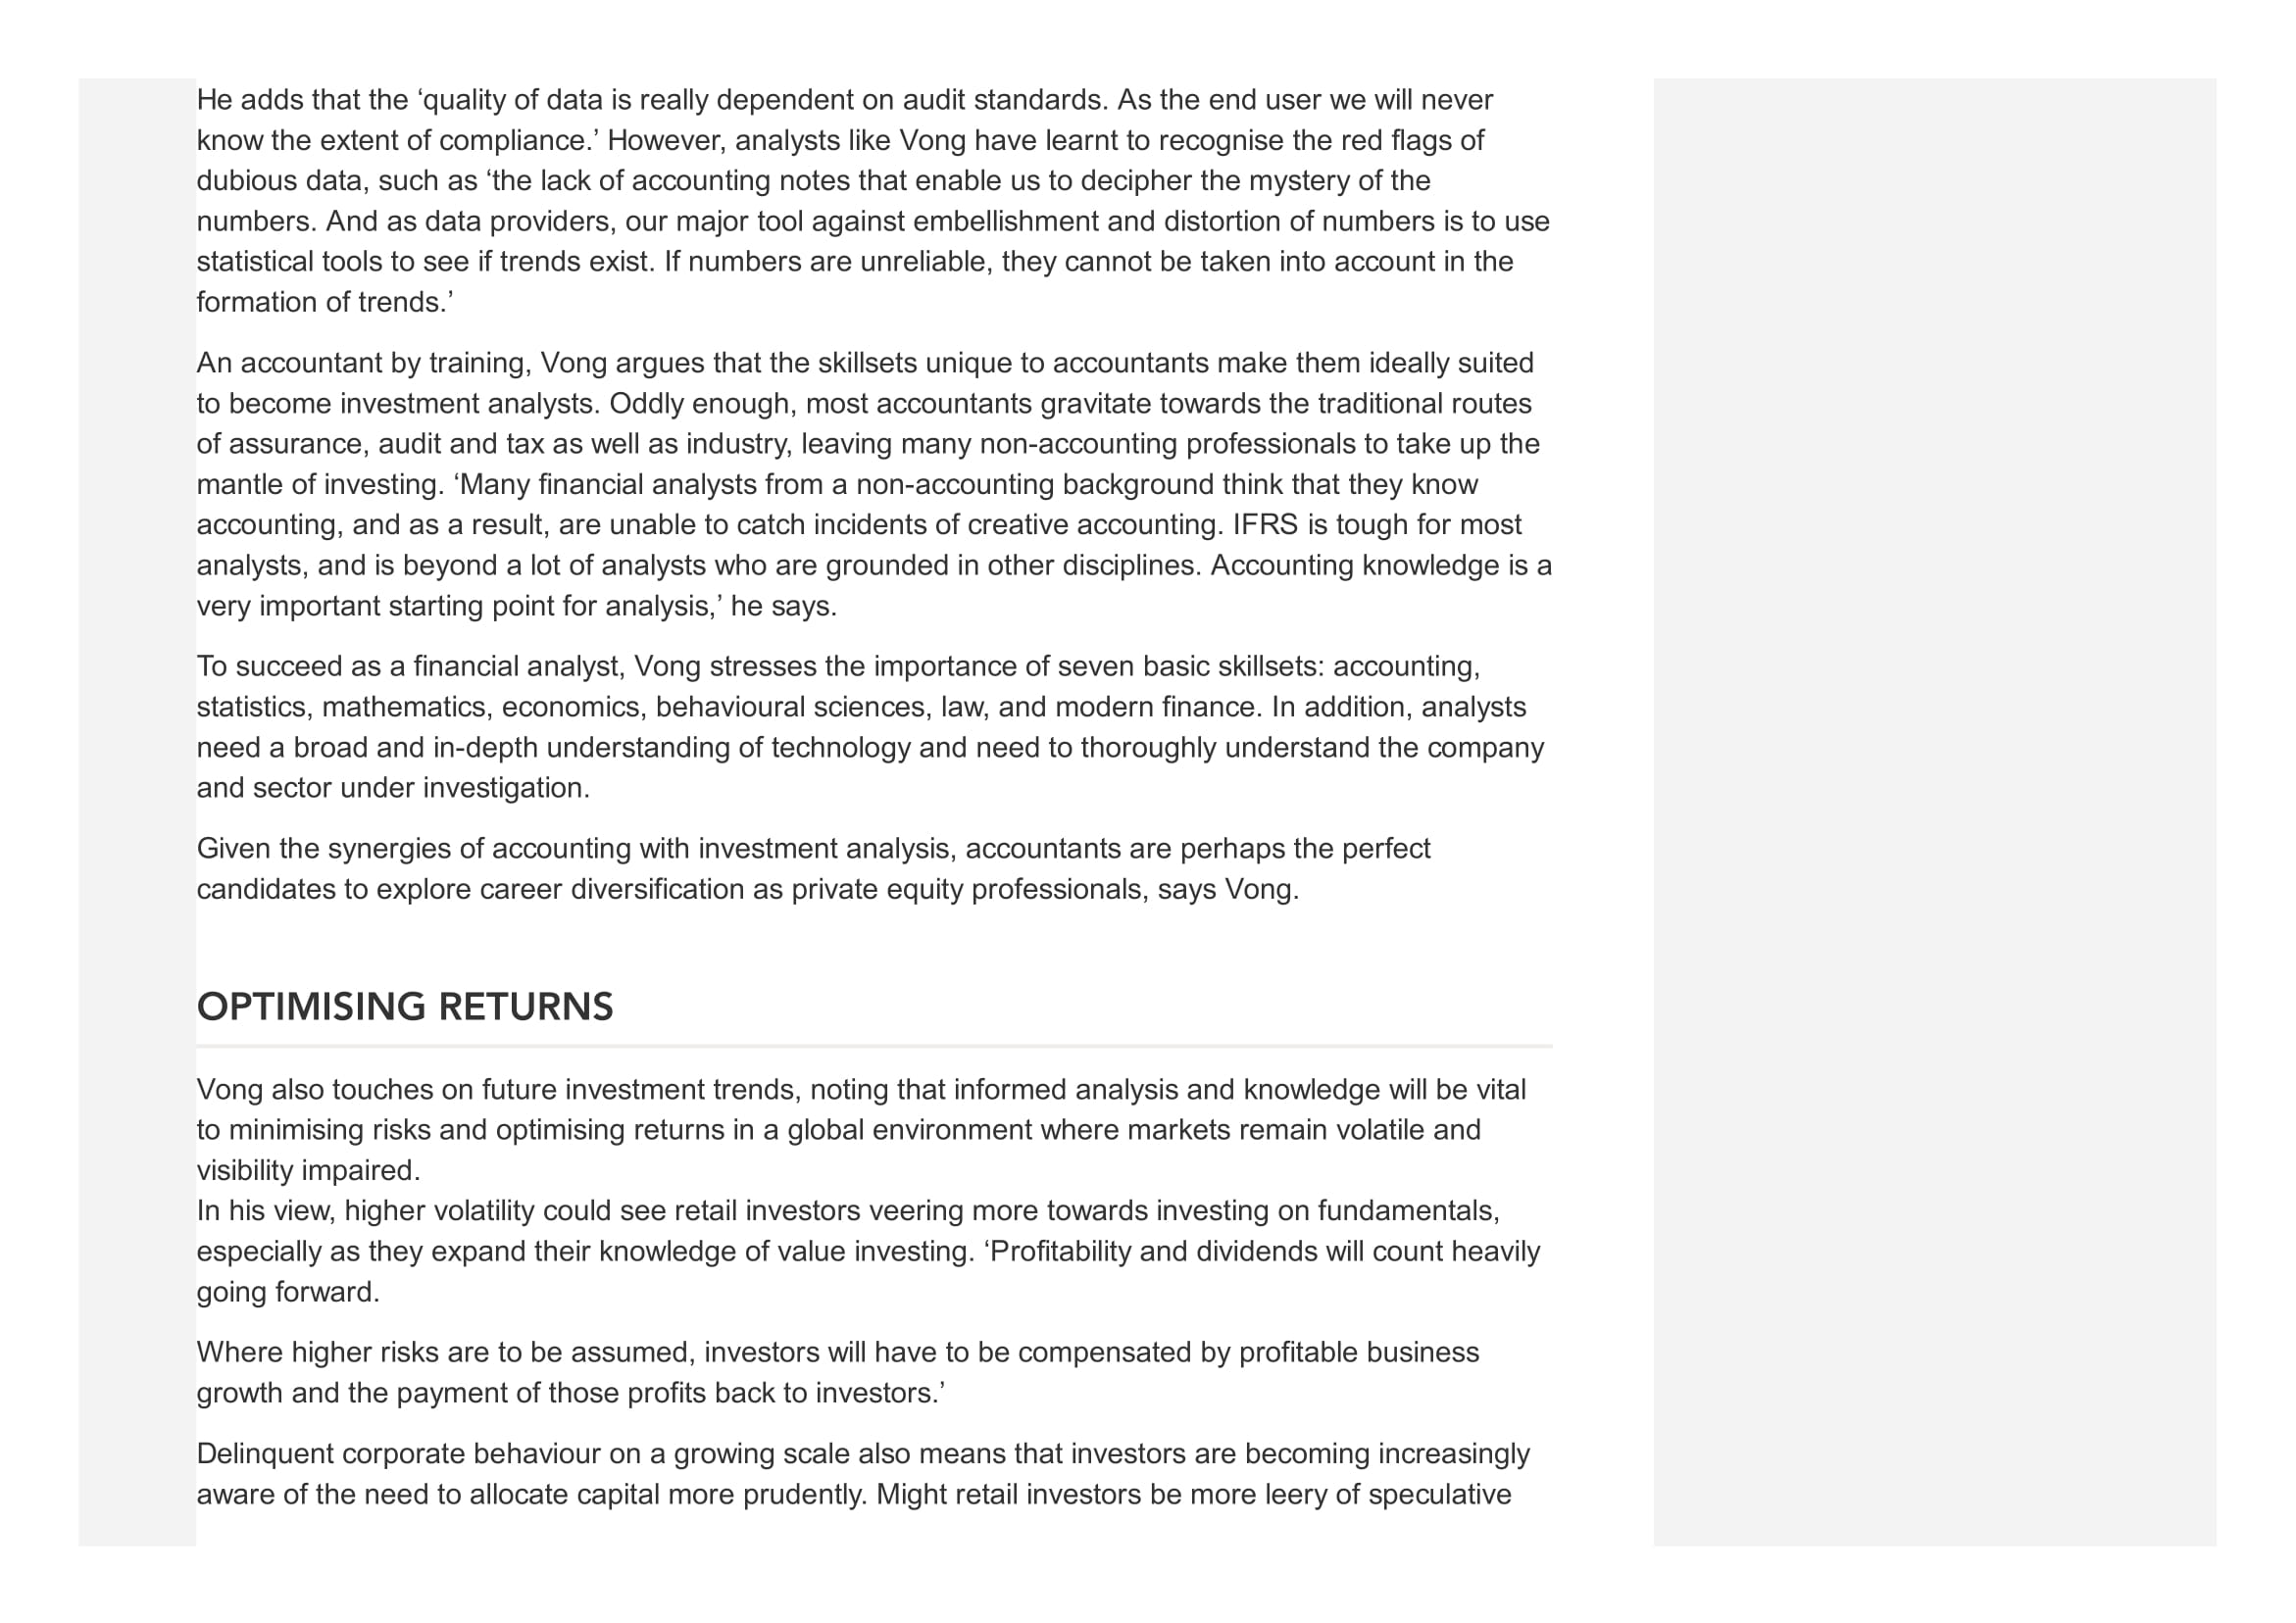 Media Coverage Welcome complexity   ACCA Global Jim Vong.pdf 3RD APRIL 2014 3